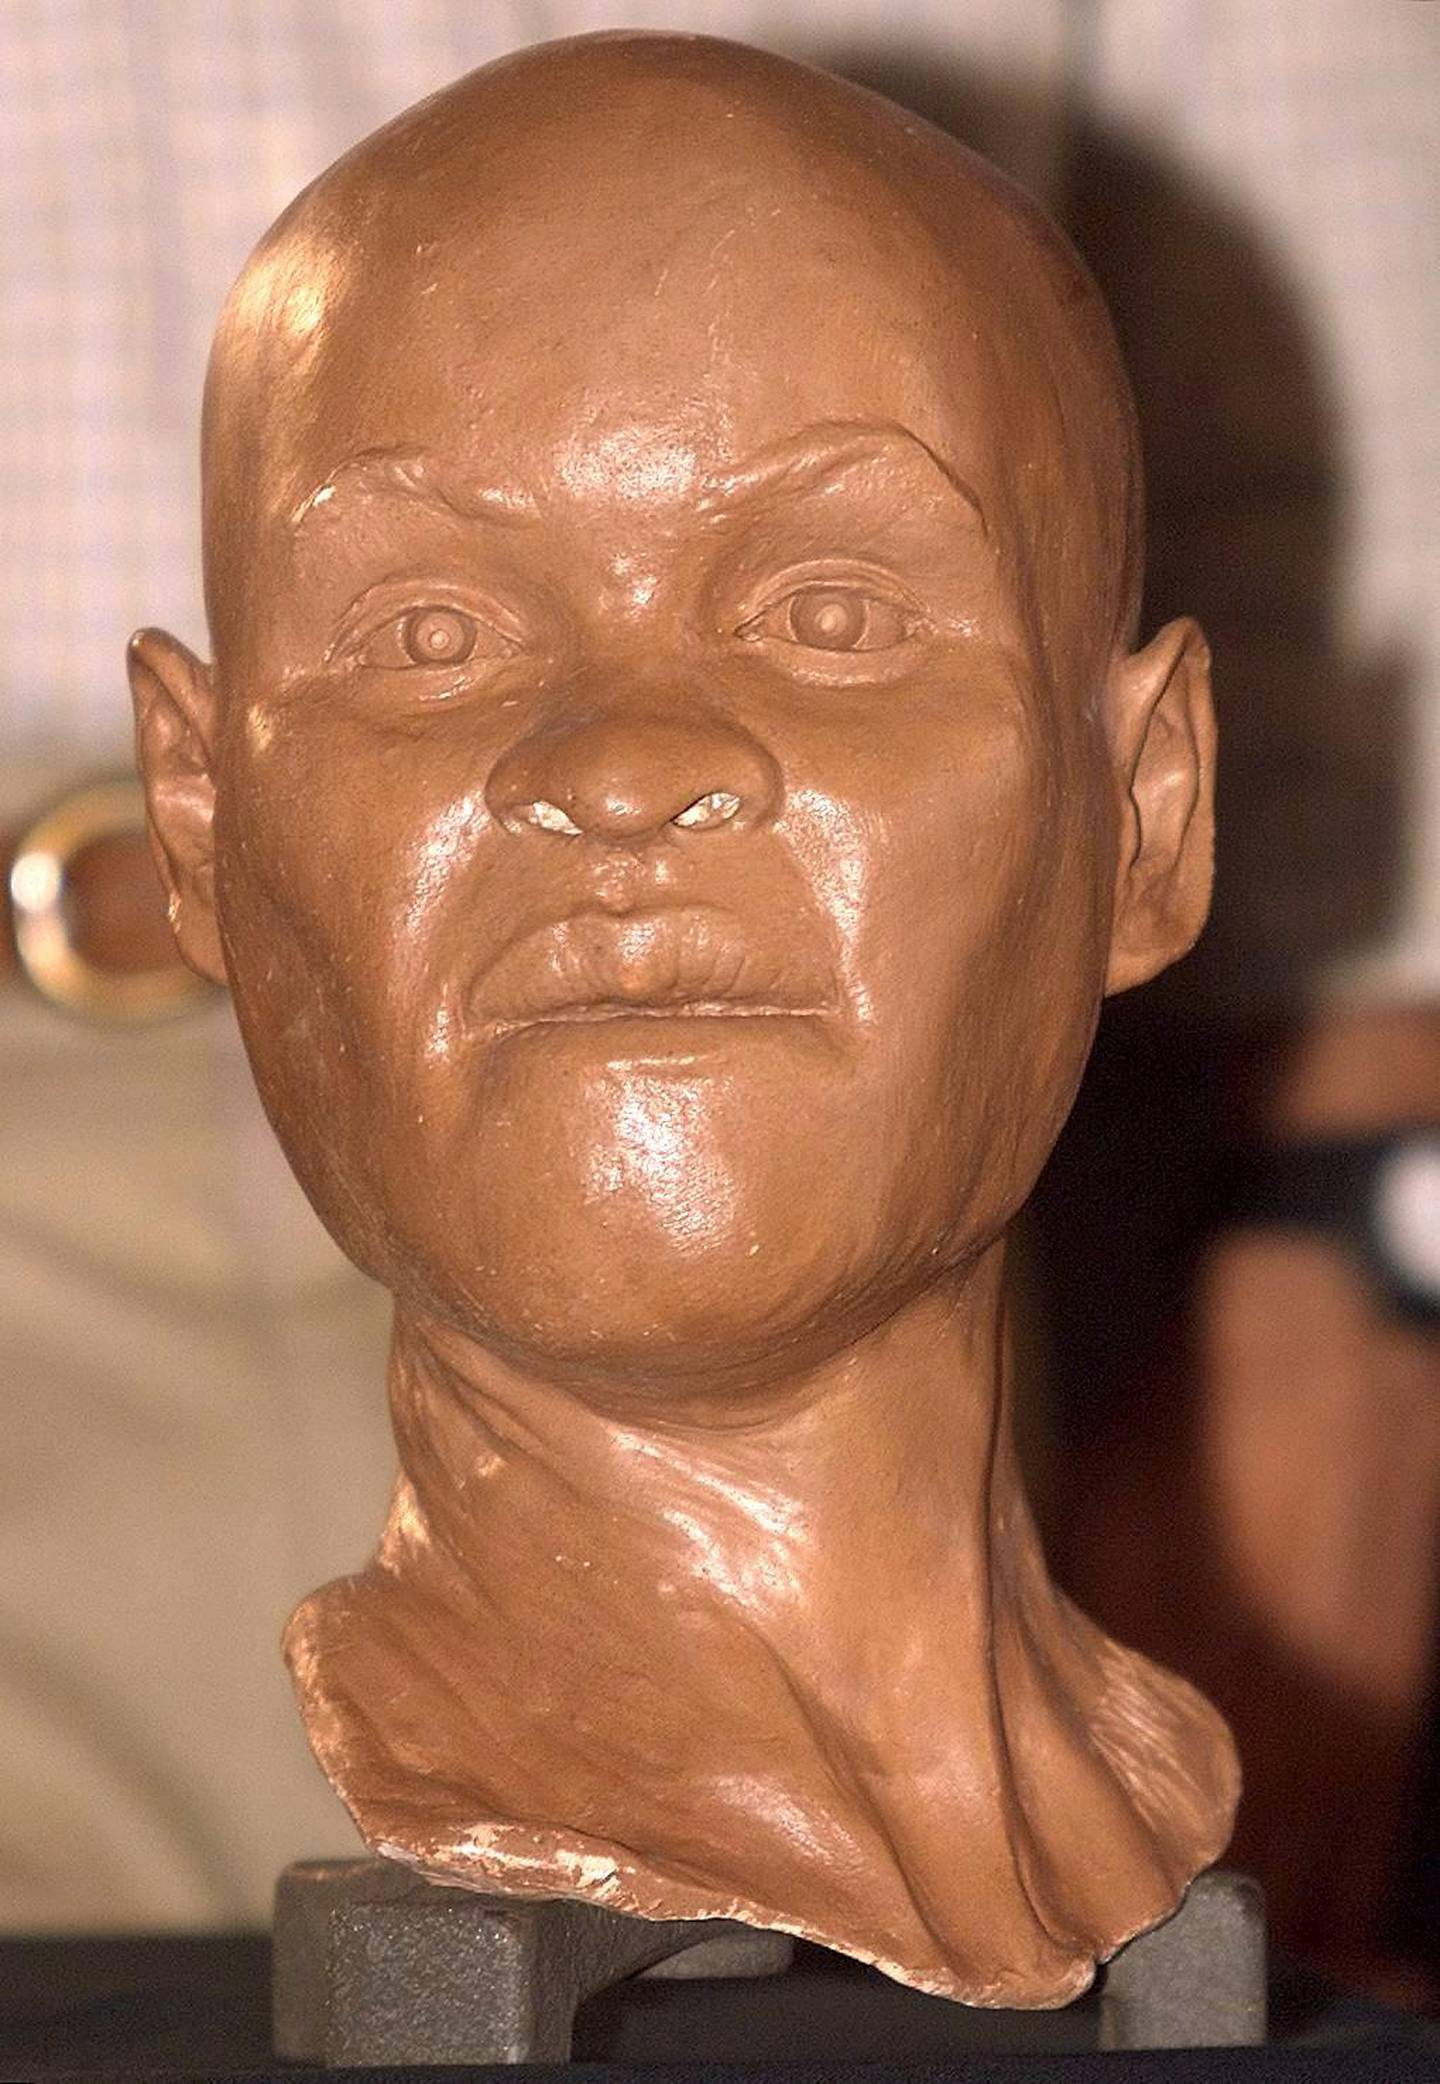 """(FILES) File photo taken on September 20, 1999 of a reconstruction of the head of """"Luzia"""", """"the first Brazilian woman"""", during its presentation at the National Museum of History in Rio de Janeiro, Brazil. - A massive fire ripped on September 2, 2018 through Rio de Janeiro's treasured National Museum, one of Brazil's oldest, in what the nation's president says is a """"tragic"""" loss of knowledge and heritage. The museum's collection included art and artifacts from Greco-Roman times and Egypt, as well as the oldest human fossil found within today's Brazilian borders, known as """"Luzia,"""" which was lost in the fire. (Photo by ANTONIO SCORZA / AFP)"""